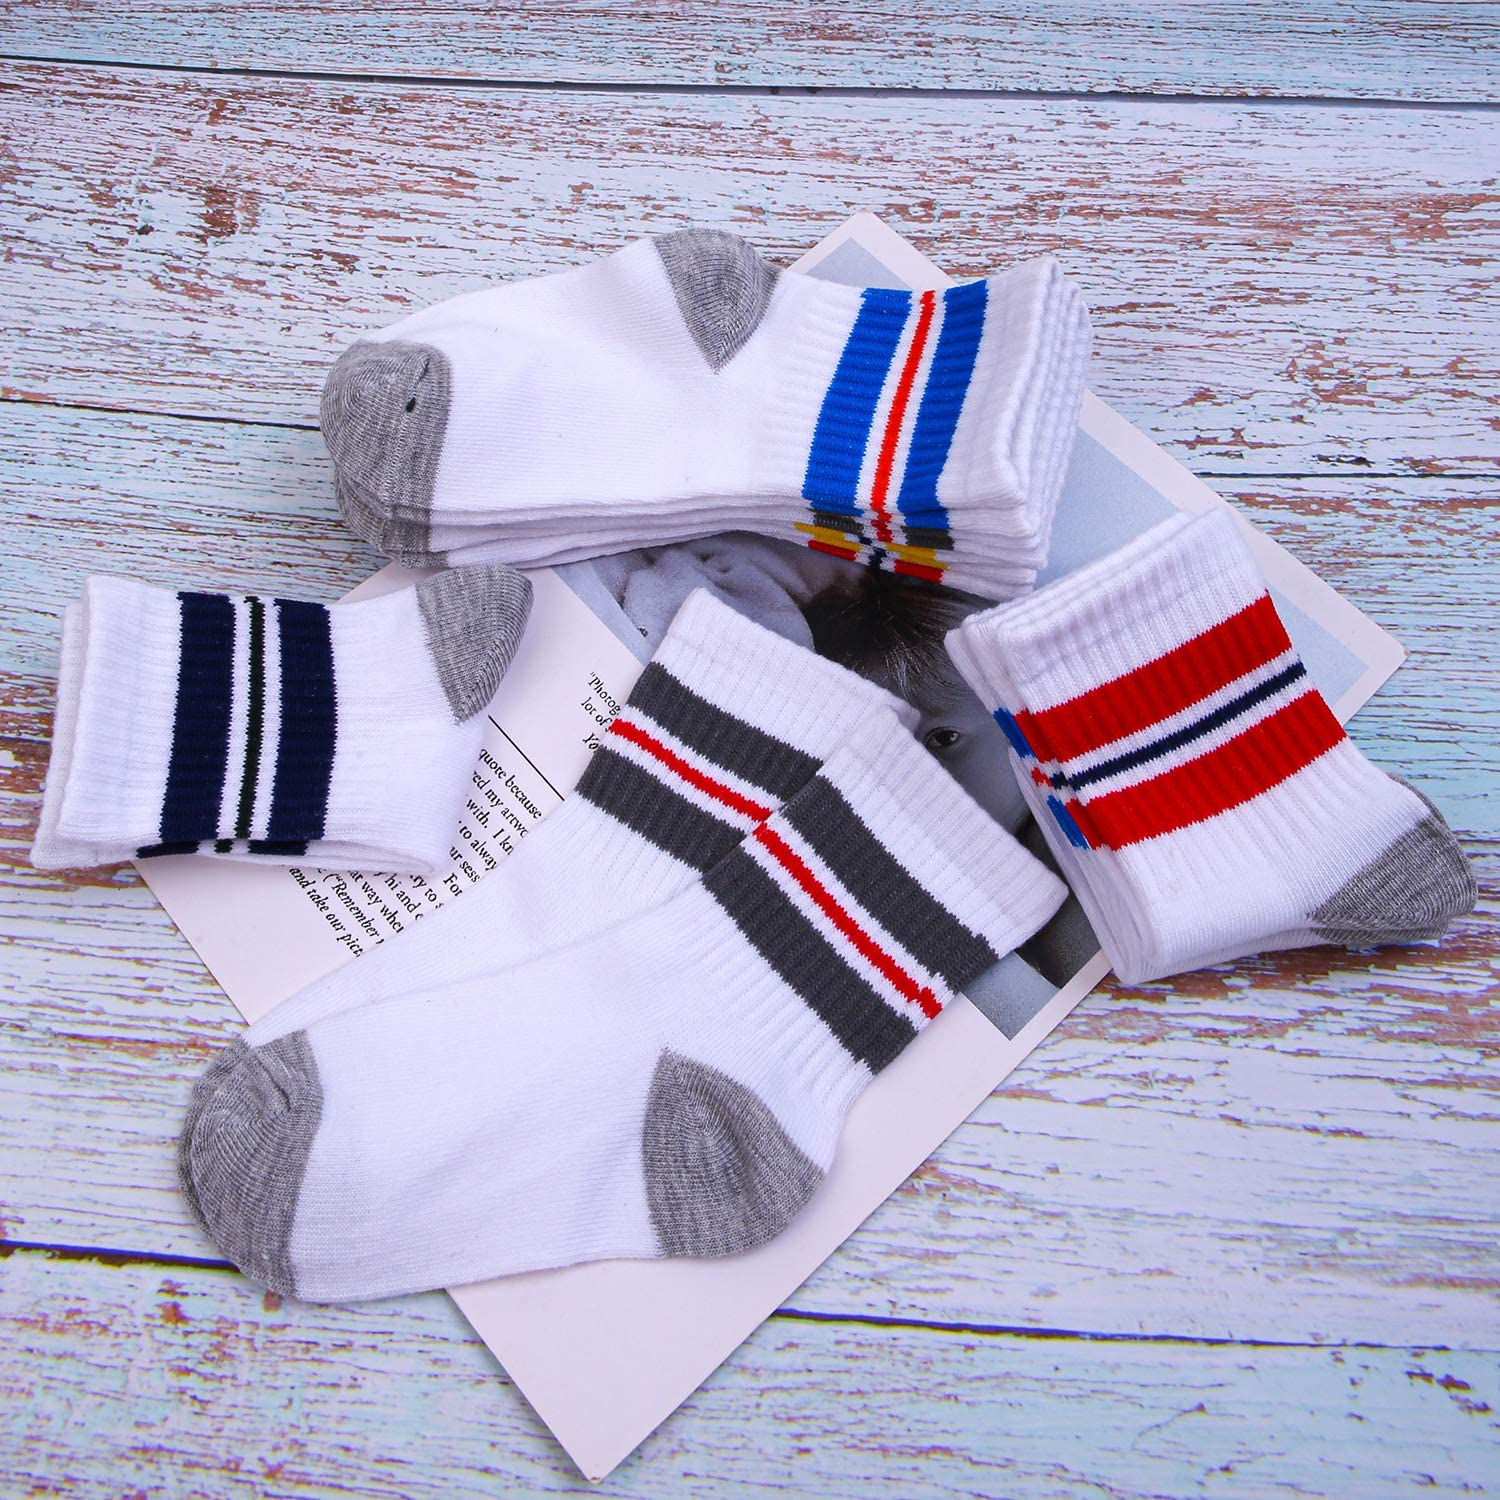 Cooraby 15 Pack Boys Crew Socks Classics Ribbed Support Athletic Kids Socks